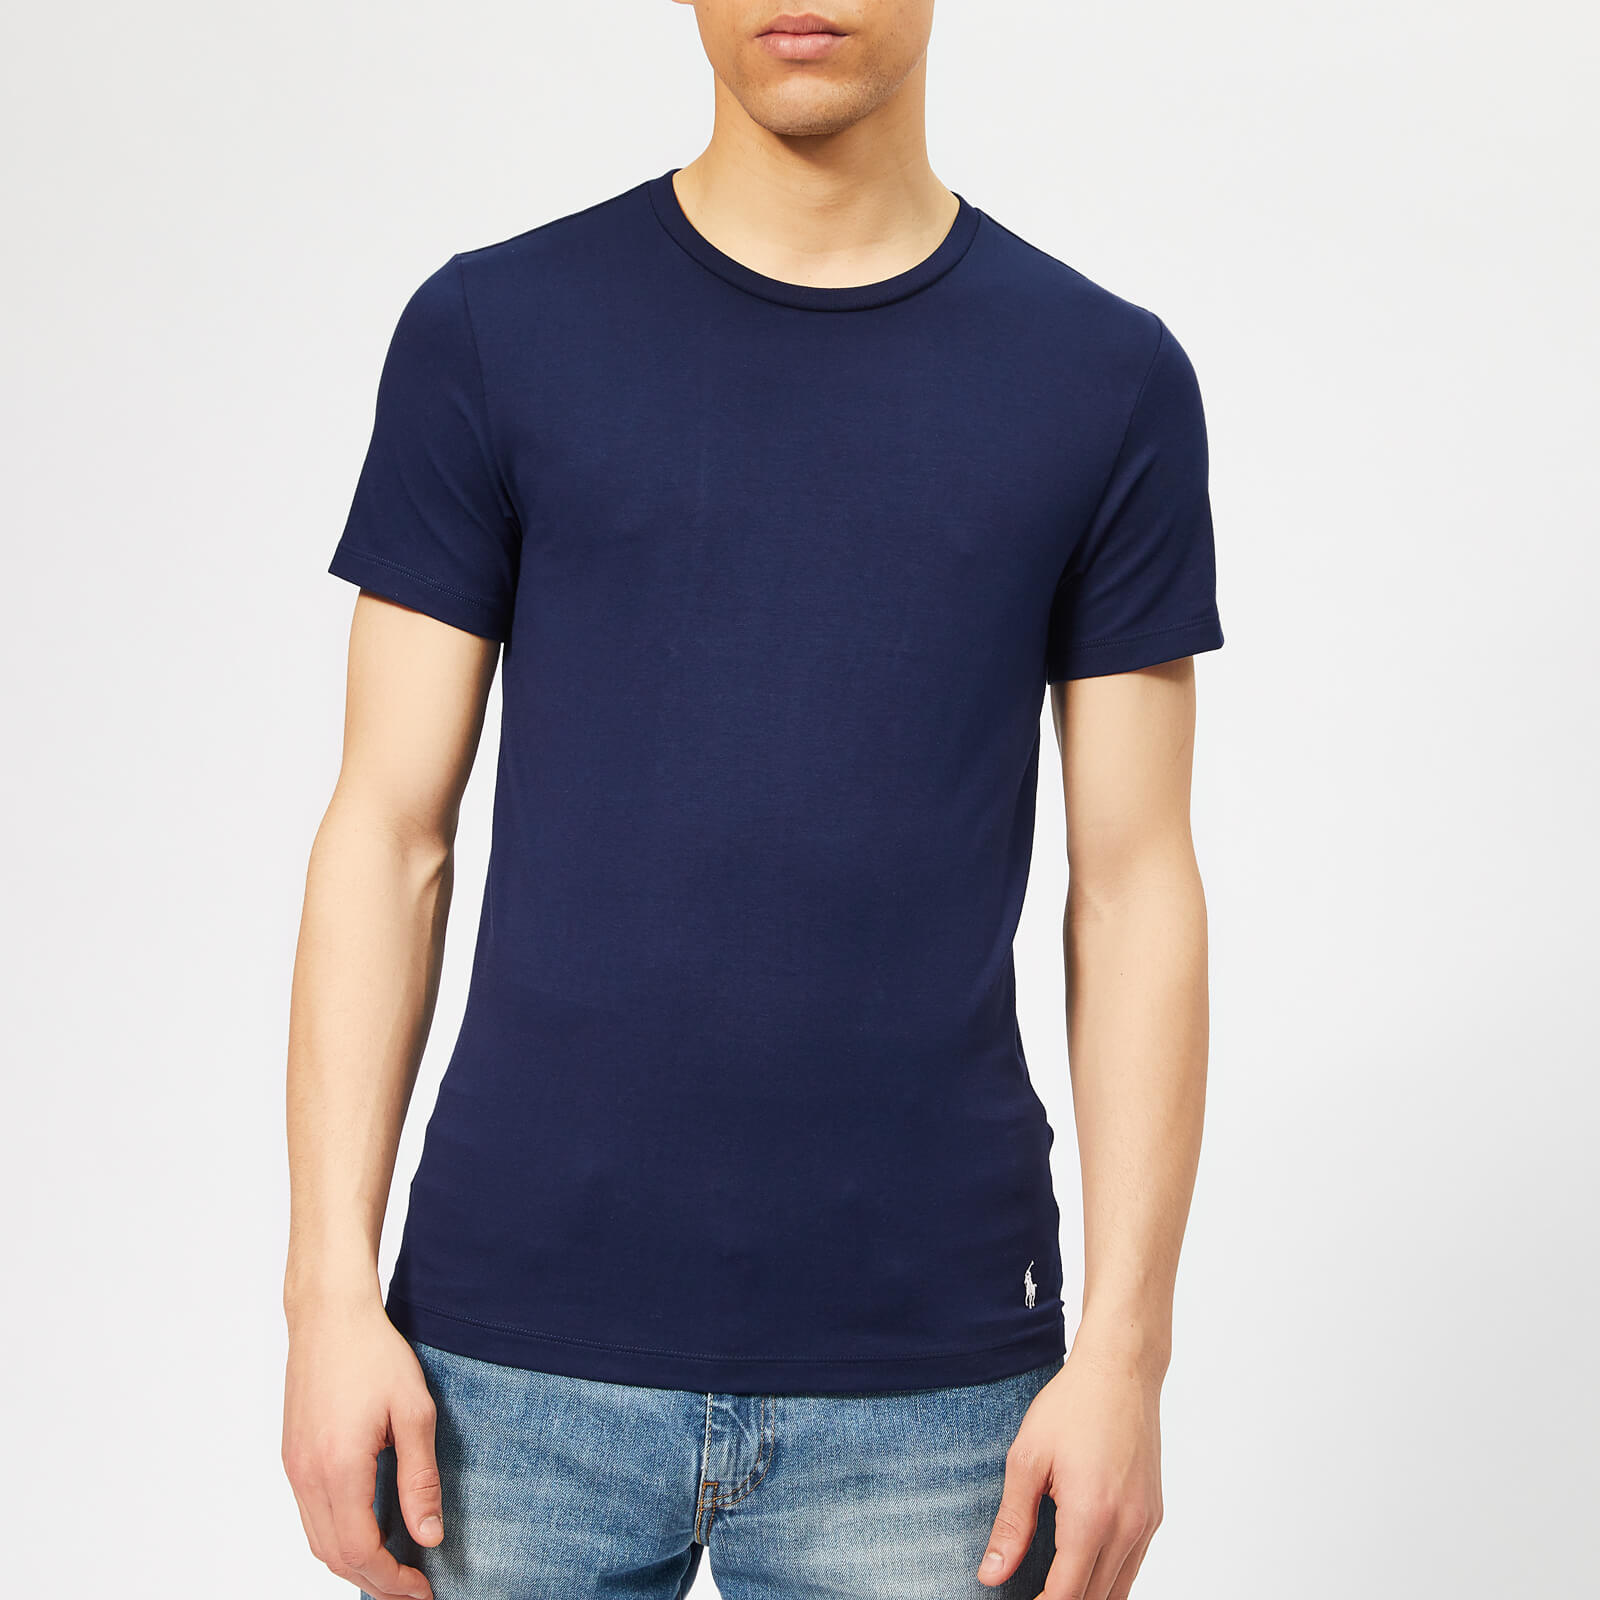 2c79f50428985 Polo Ralph Lauren Men s 2 Pack Crew Neck T-Shirt - Cruise Navy - Free UK  Delivery over £50